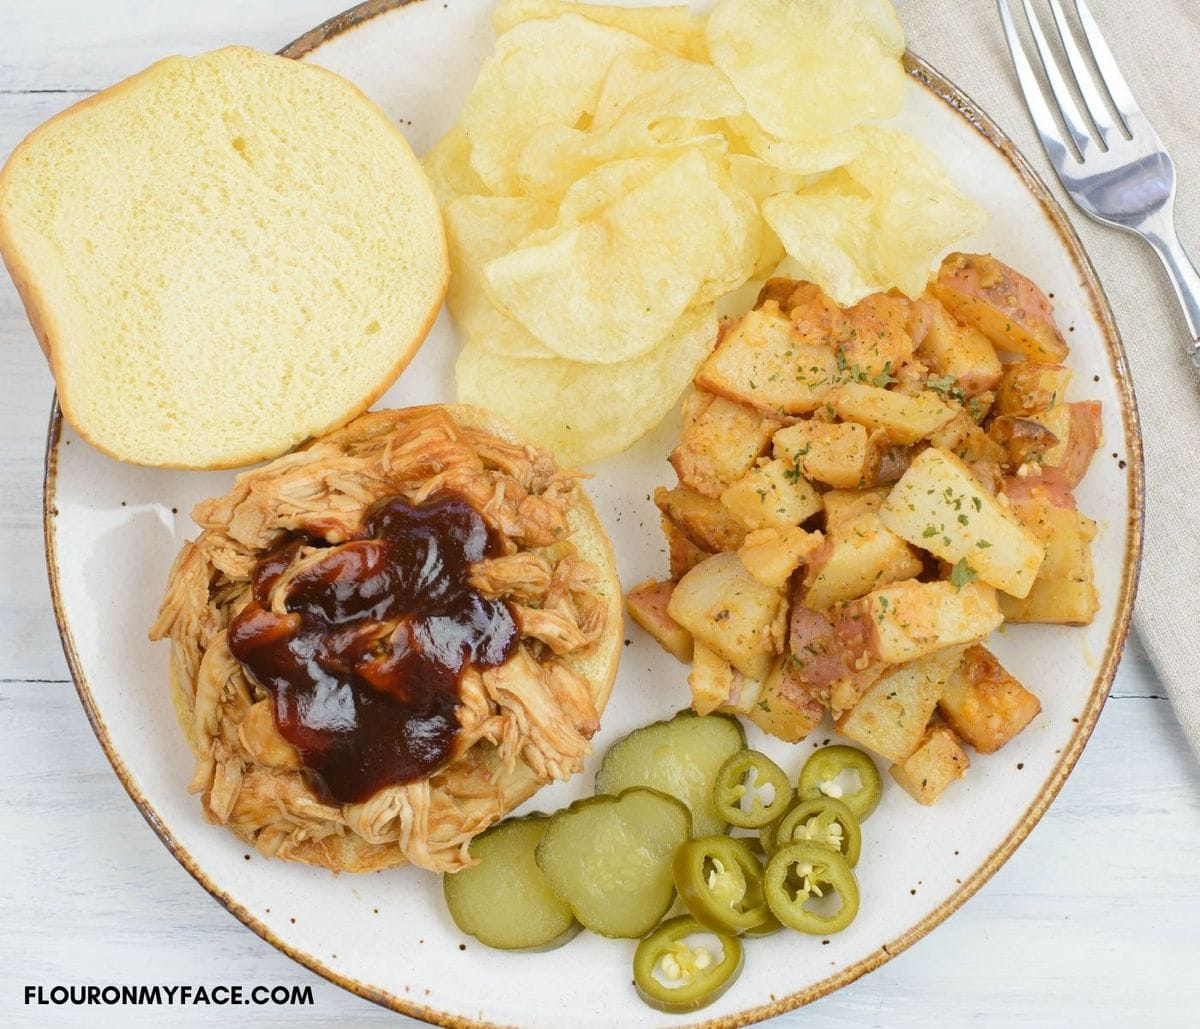 Opend pulled chicken sandwich with barbecue sauce, sides, chips, and slice pickles and jalapeno peppers on a dinner plate.